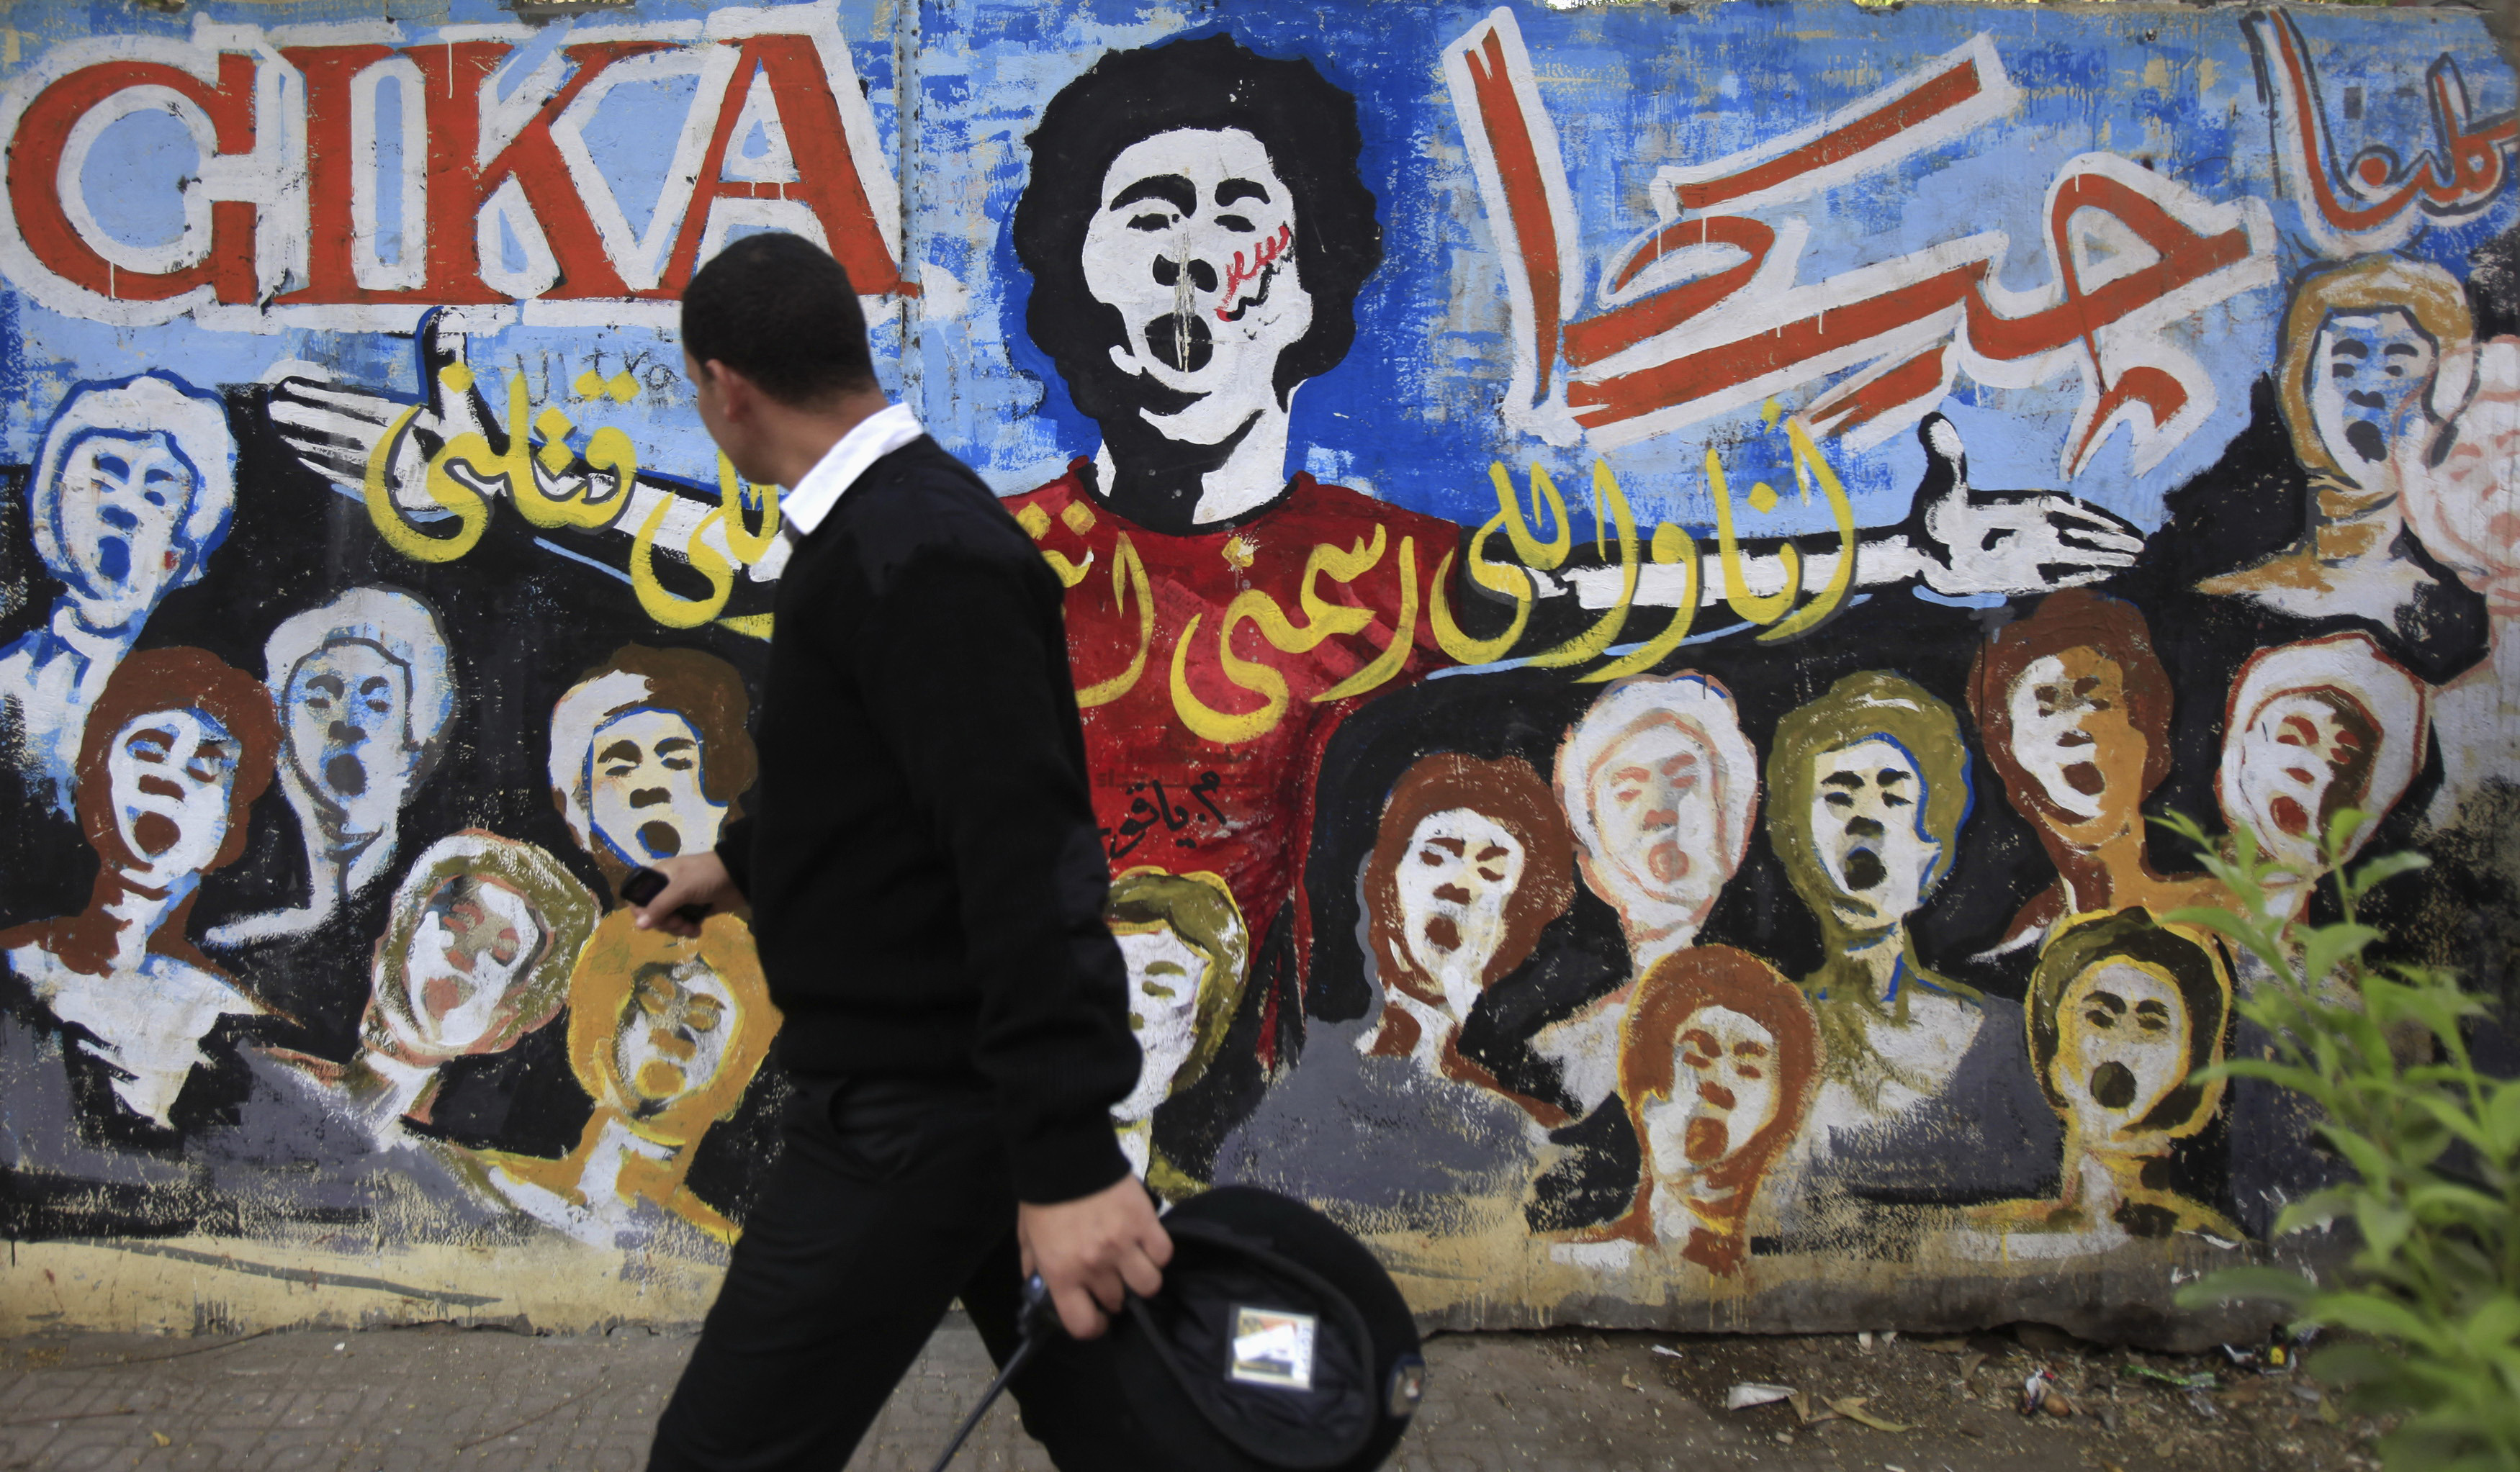 An Egyptian police officer passes a mural depicting youth activist killed during the 2011 Cairo uprising, which was organized through social media.